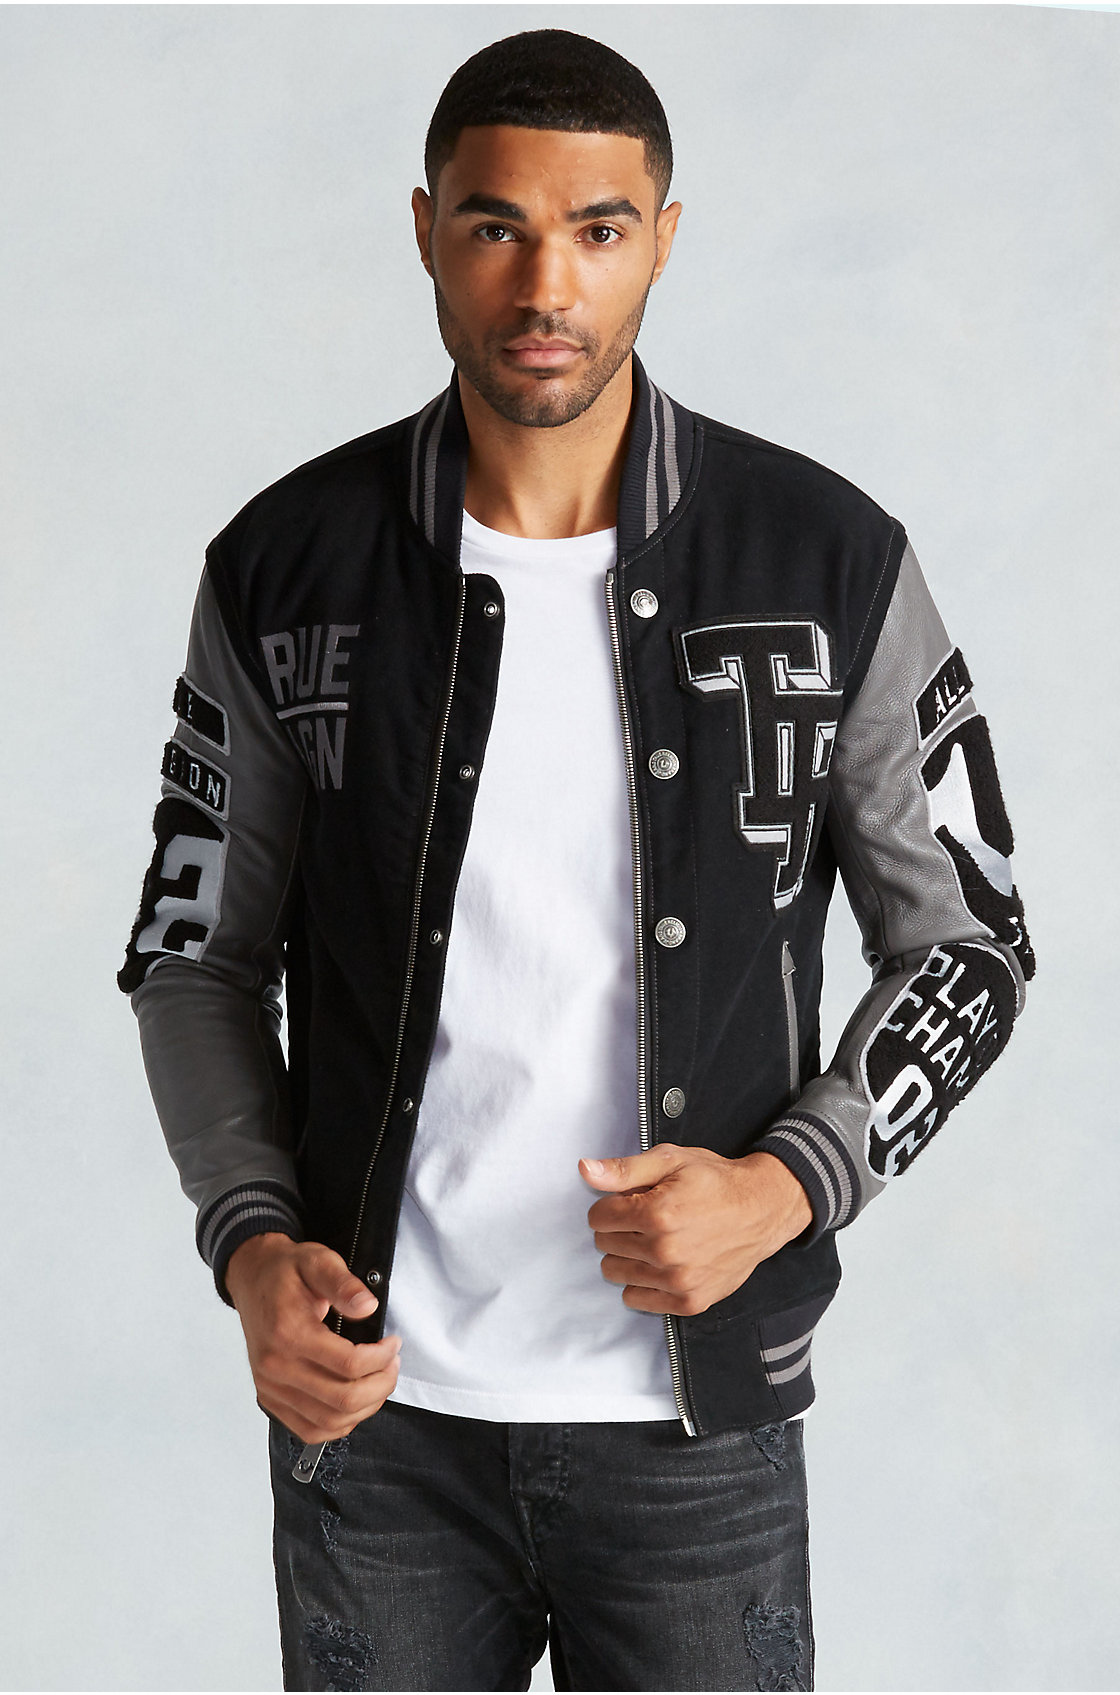 Mens Varsity Jackets. Looking to infuse your cold-weather style with a sporty, collegiate look? Check out our great selection of men's varsity jackets.